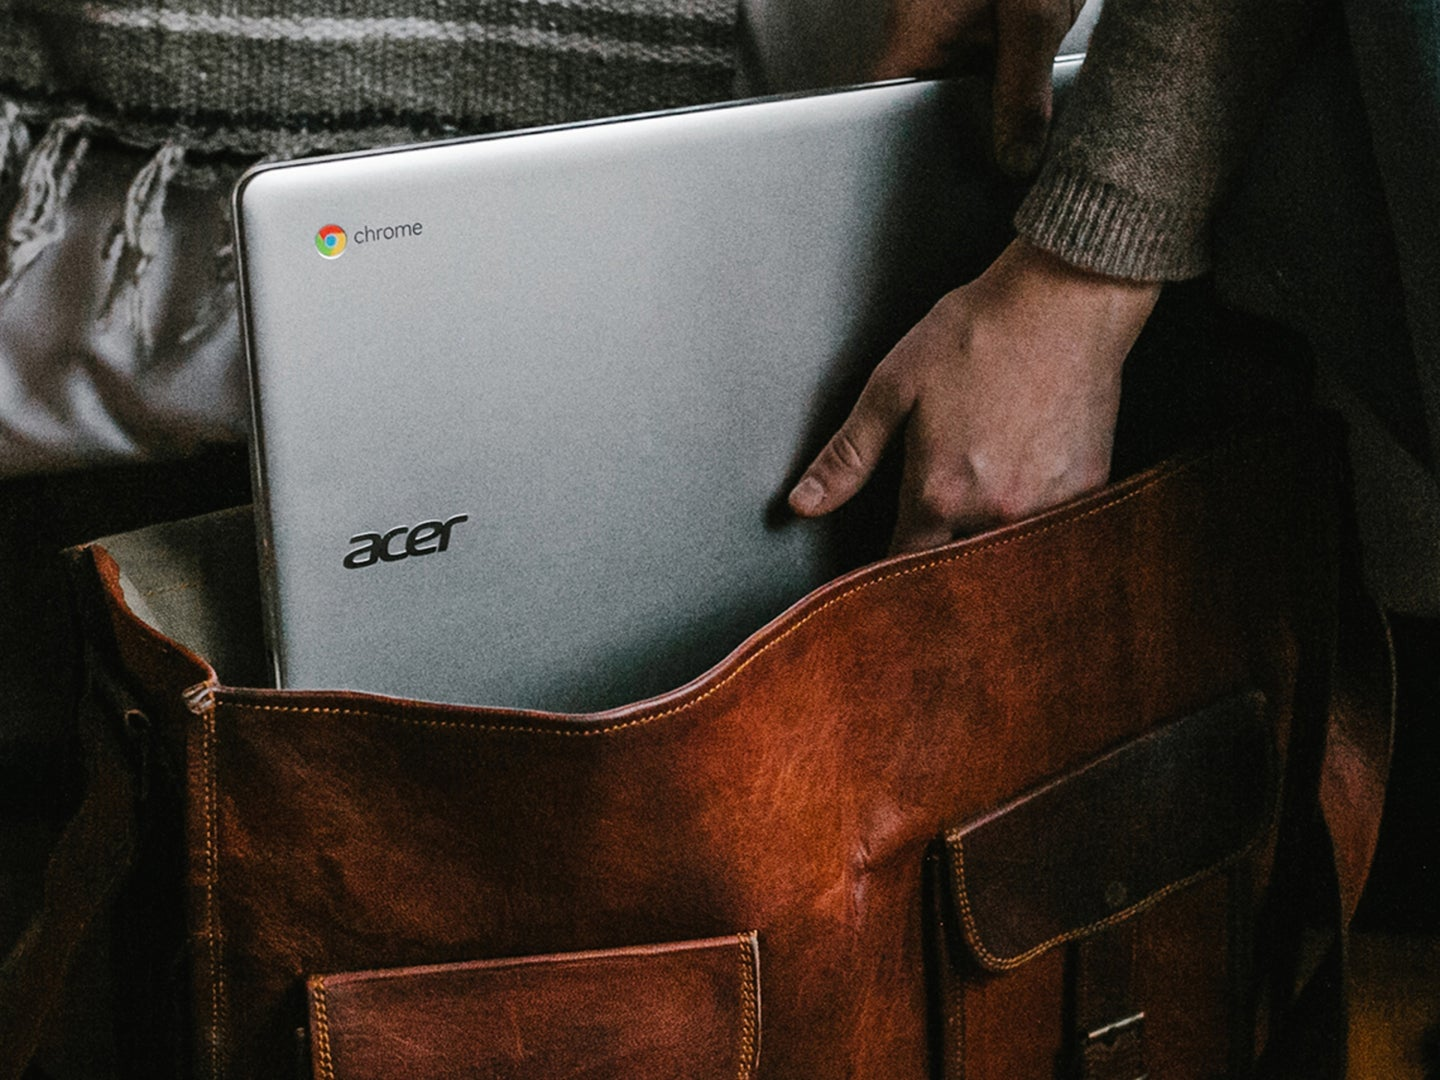 Hand in leather bag with Chromebook laptop